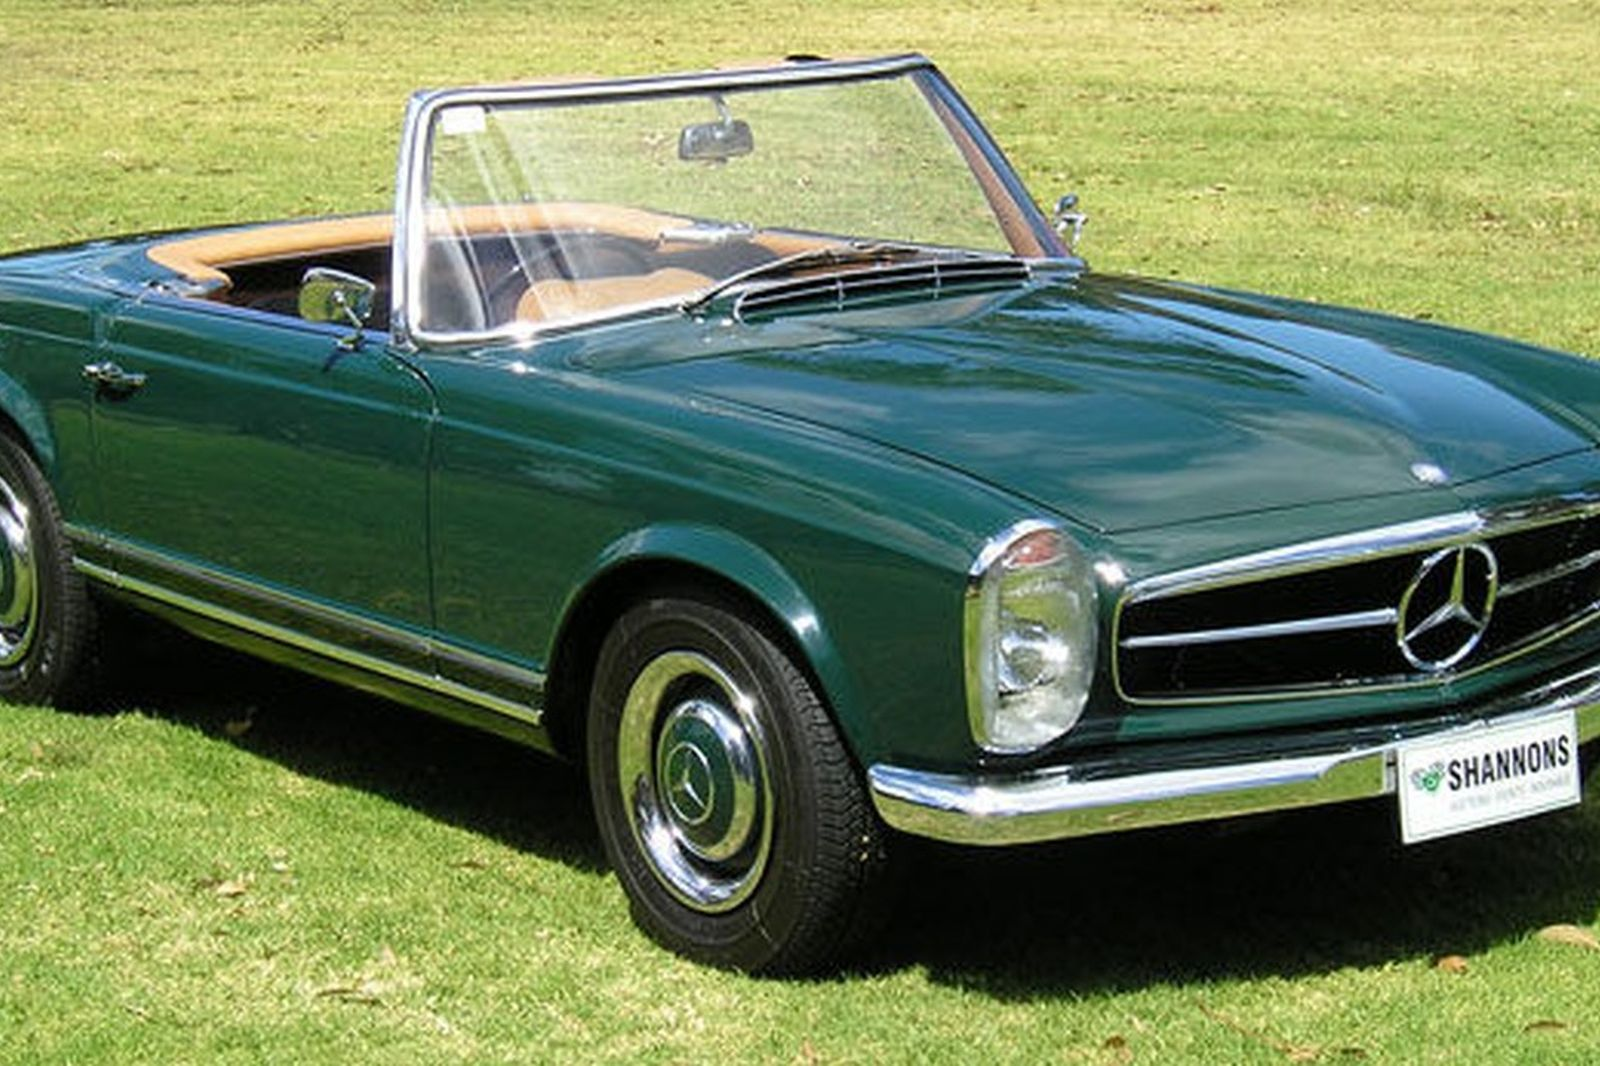 Mercedes benz 250sl convertible auctions lot 68 shannons for Mercedes benz us open